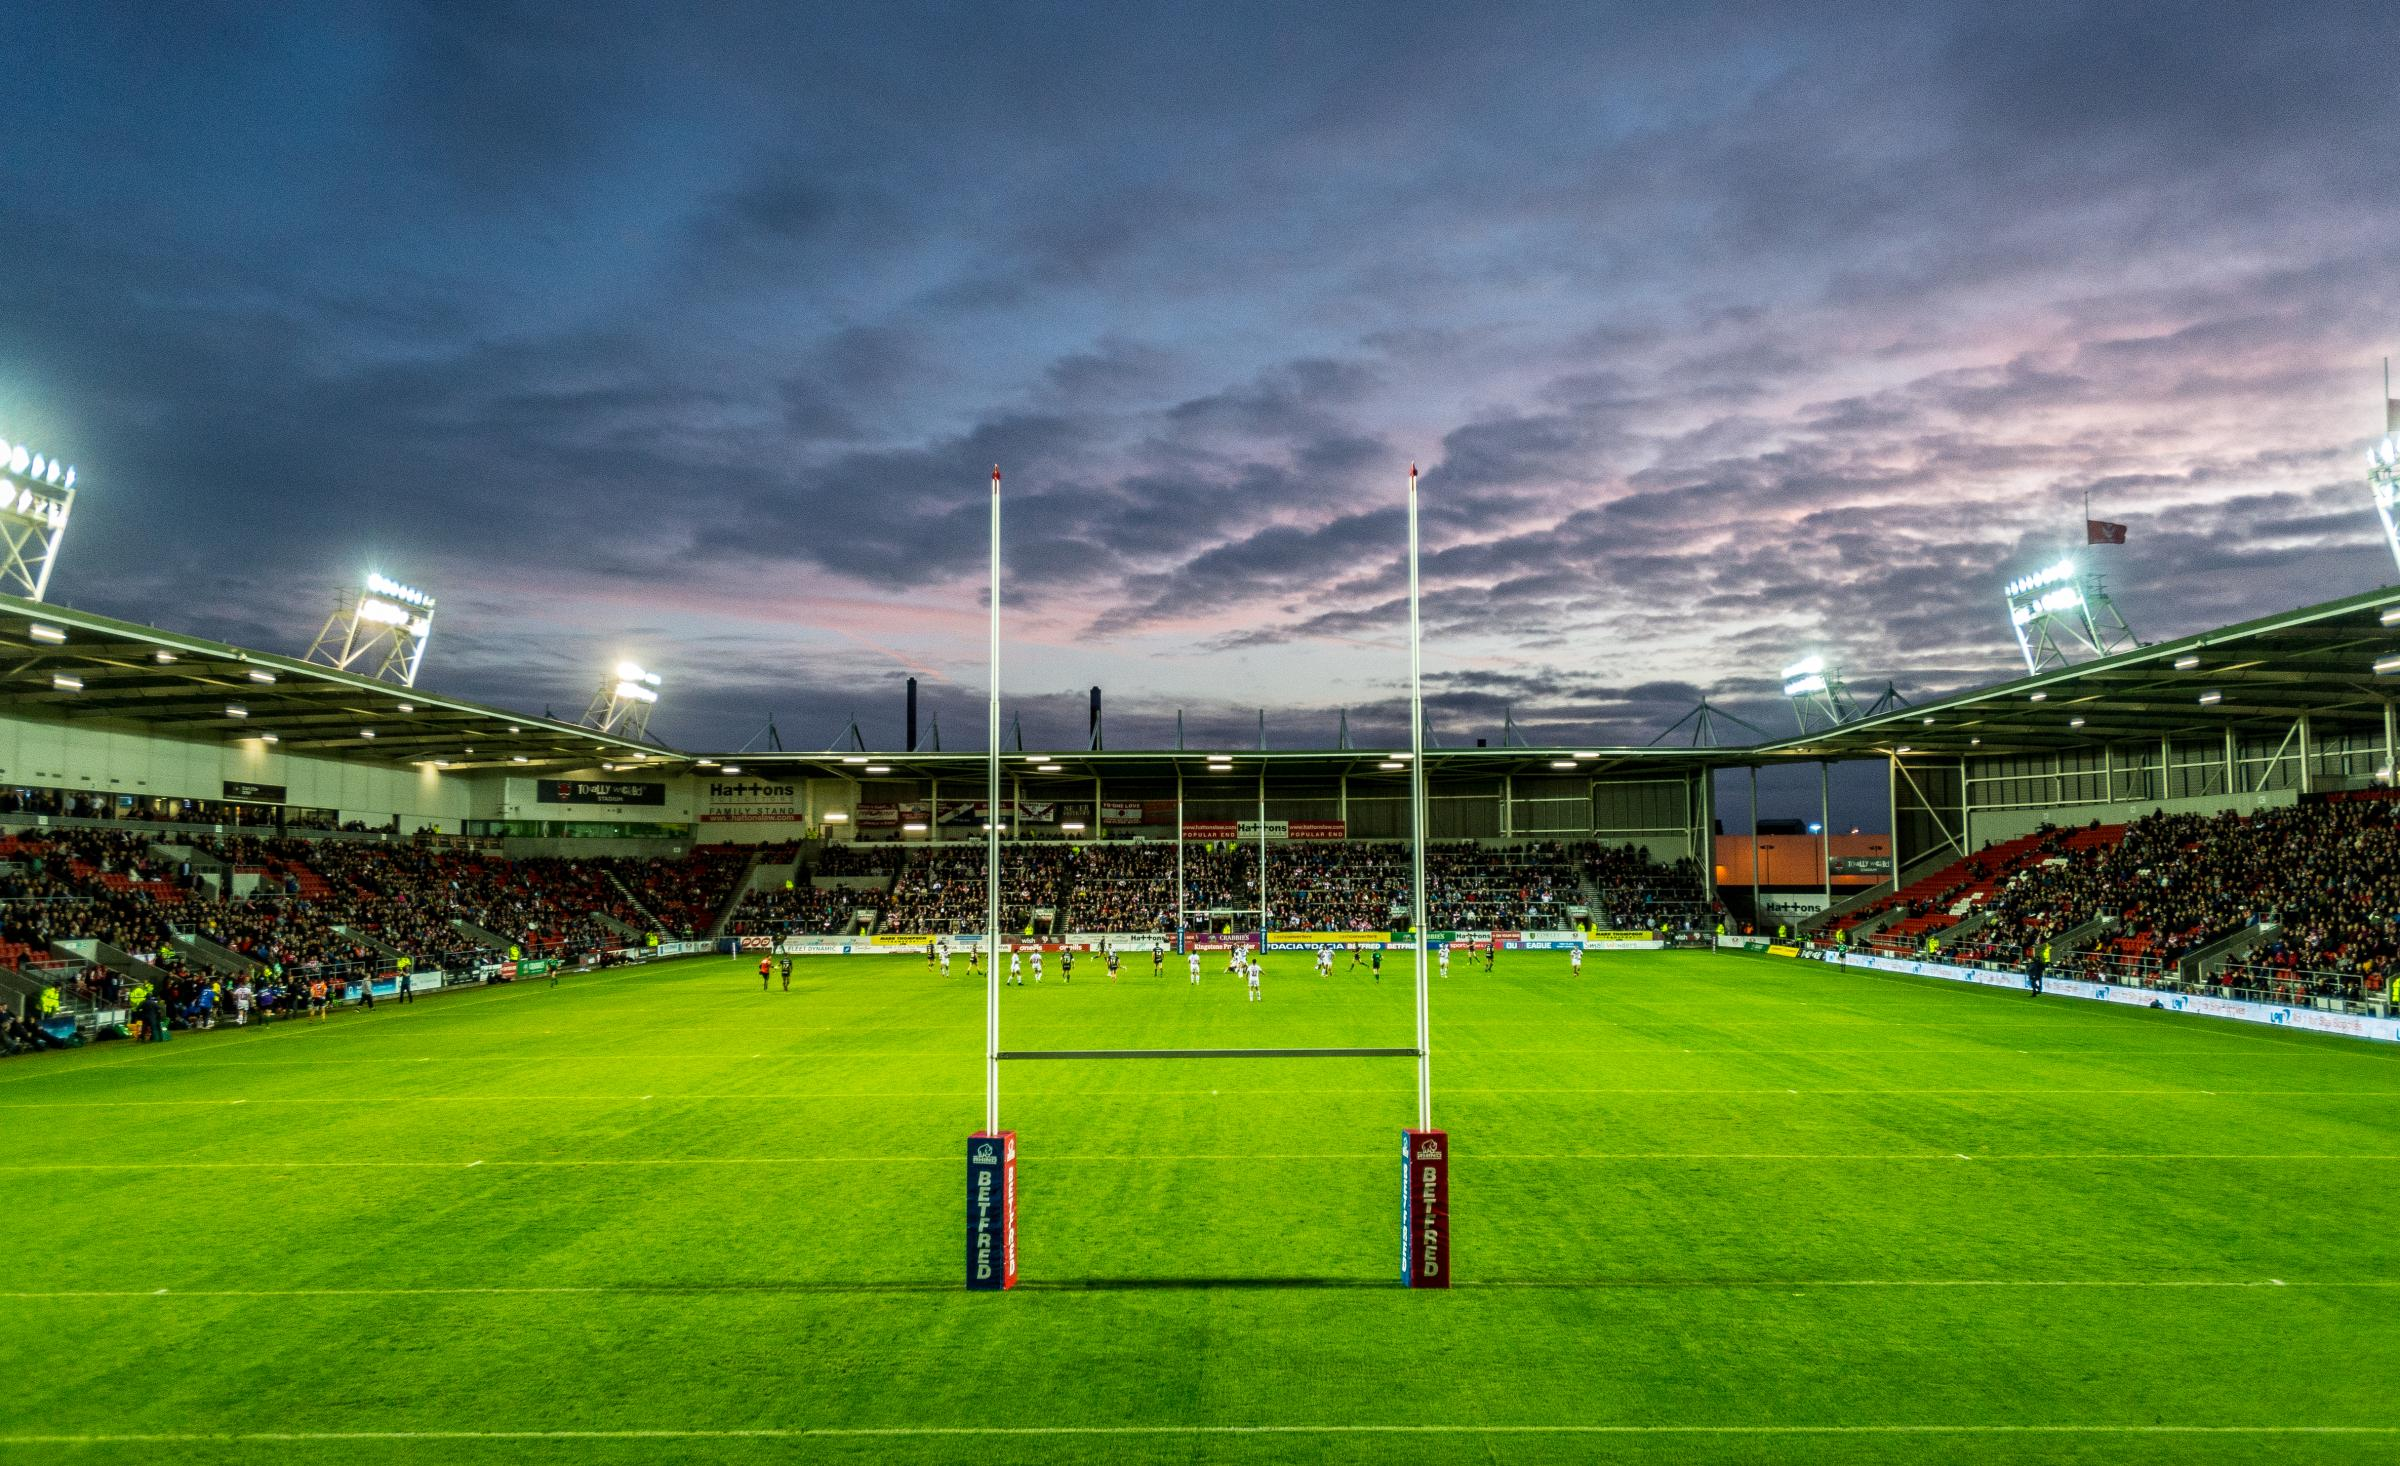 The Totally Wicked Stadium, home to St Helens RLFC. Picture by Bernard Platt